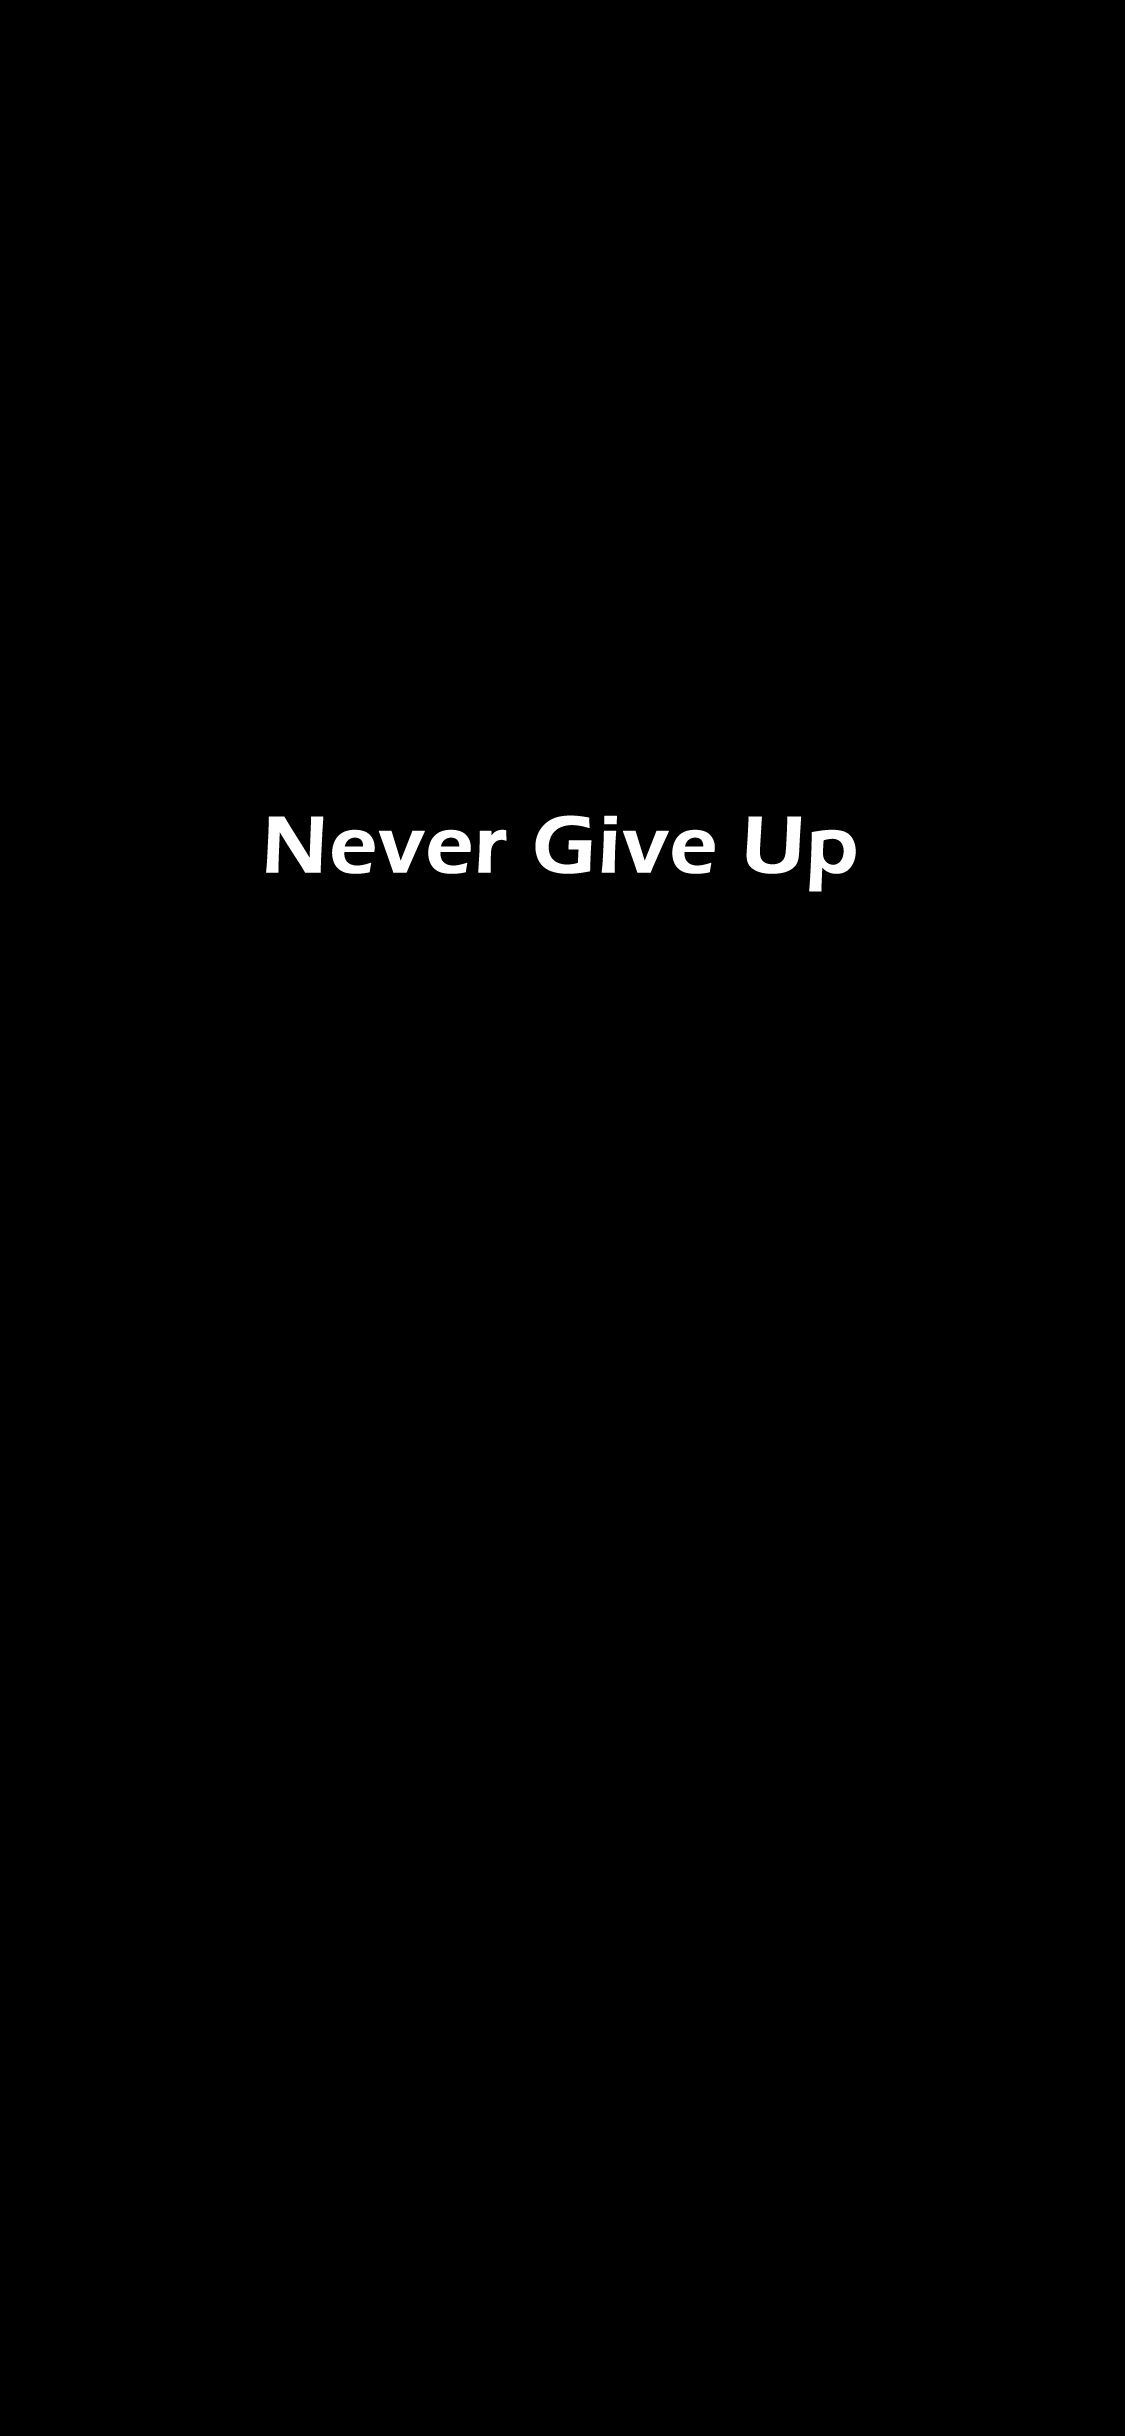 Never Give Up Iphonex Wallpaper Blackandwhite Attitude Blackandwhite Never Give Up Never Give Up Quotes Black Wallpaper